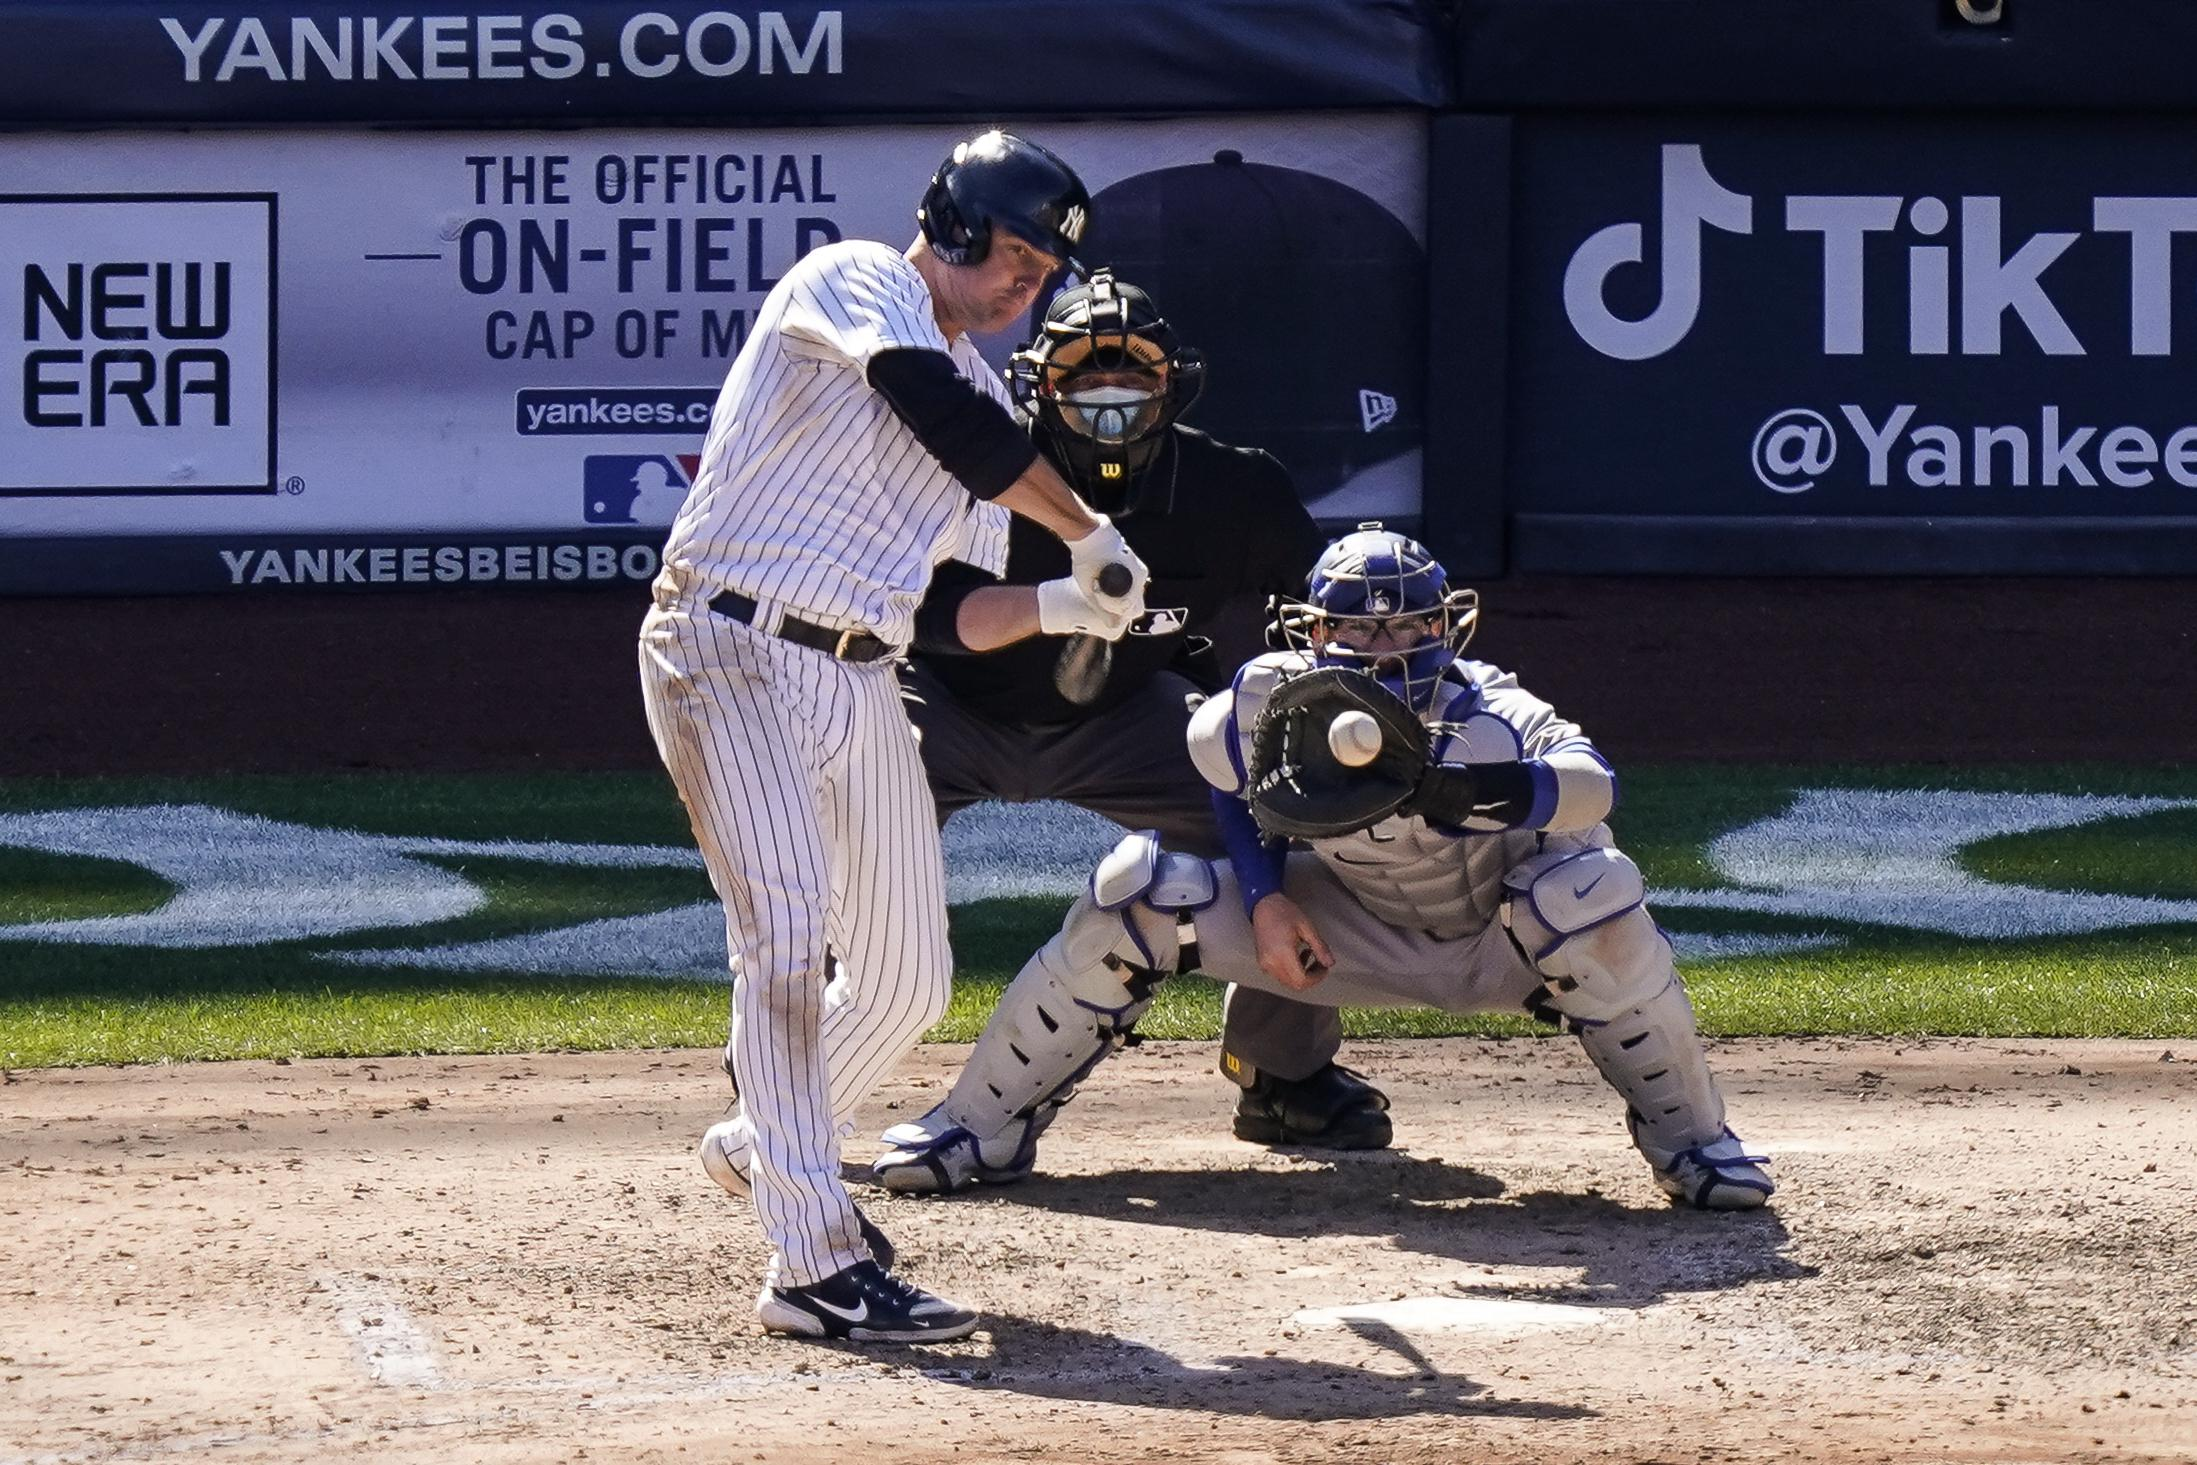 Yankees' Jay Bruce to retire after Sunday's game